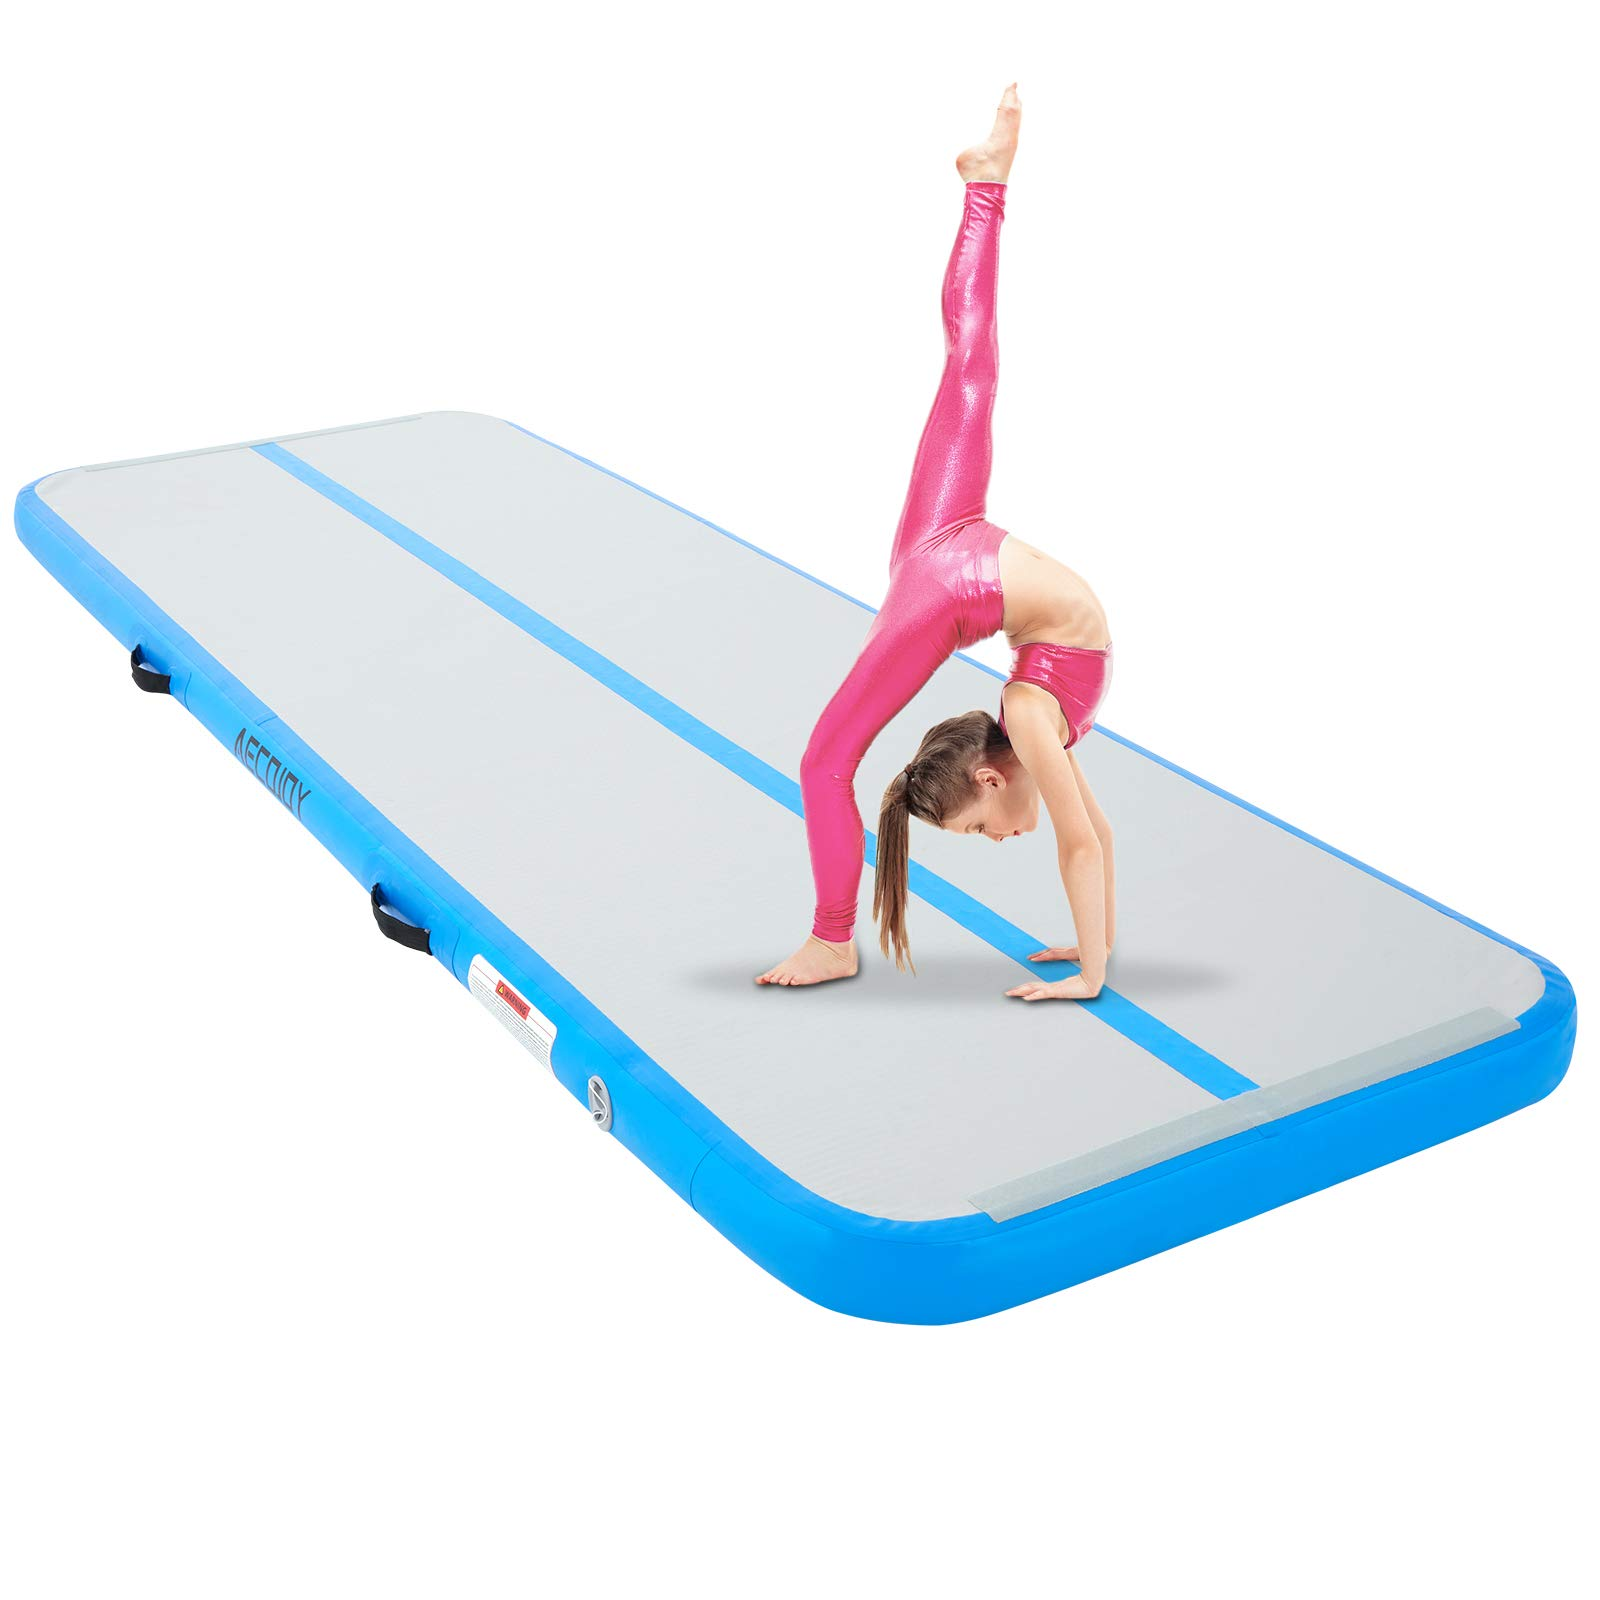 """AECOJOY Air Inflatable Track 13ft/16ft/20ft Gymnastics Training Mat 4"""" Thickness Tumbling Track Mats for Home Use/Training/Gym/Tumble/Water"""